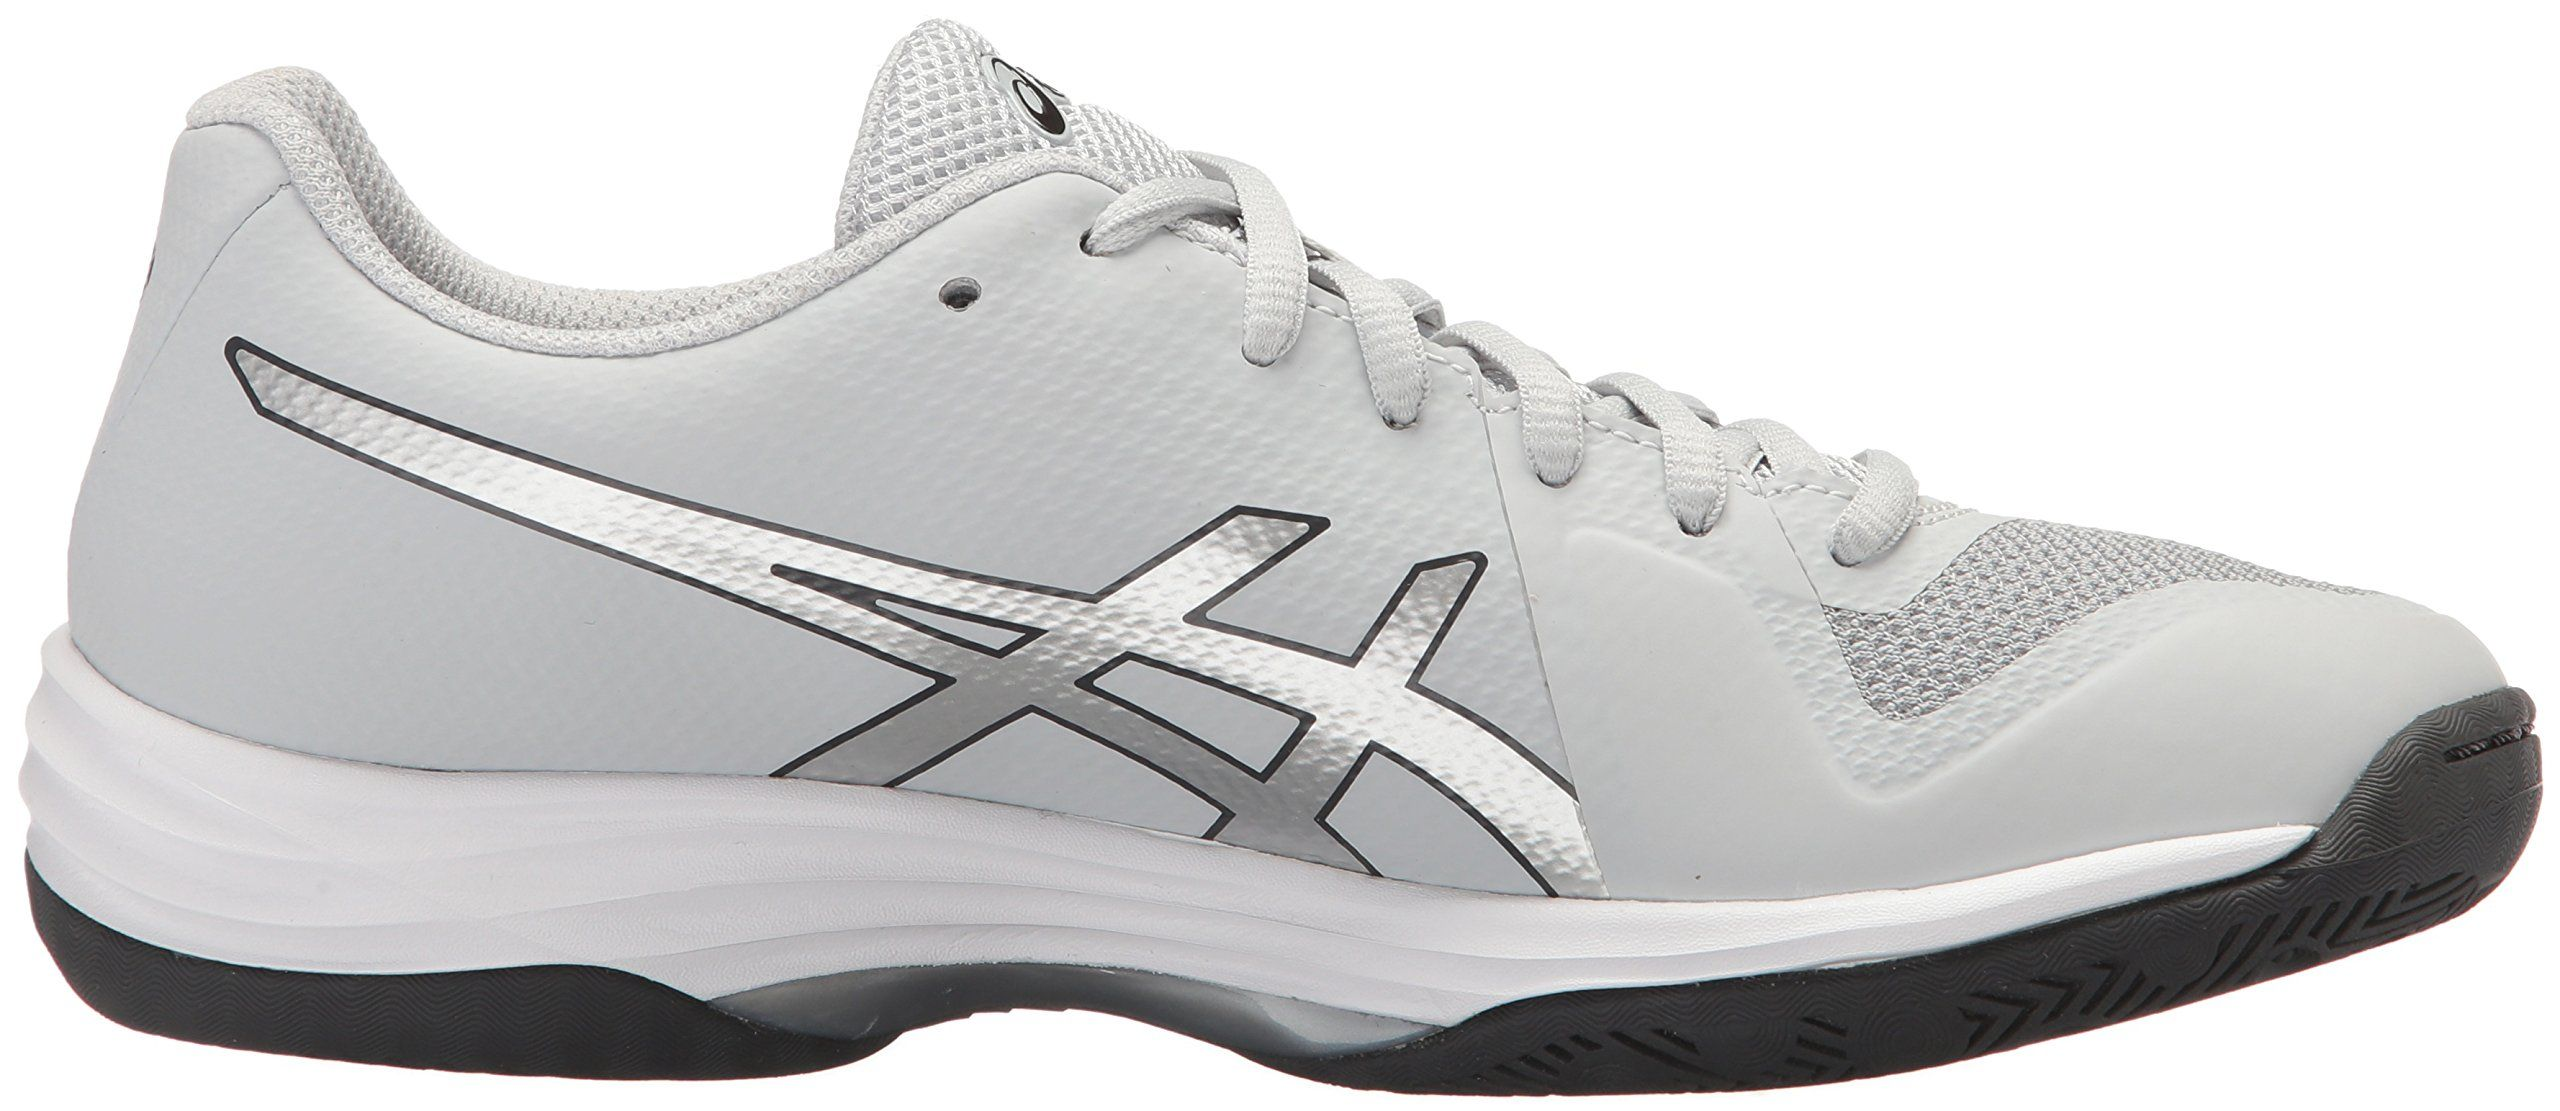 Asics Womens Geltactic 2 Volleyball Shoe Glacier Grey Silver Dark Grey 12 Medium Us Check Out This Great Product This L In 2020 Volleyball Shoes Sport Shoes Shoes